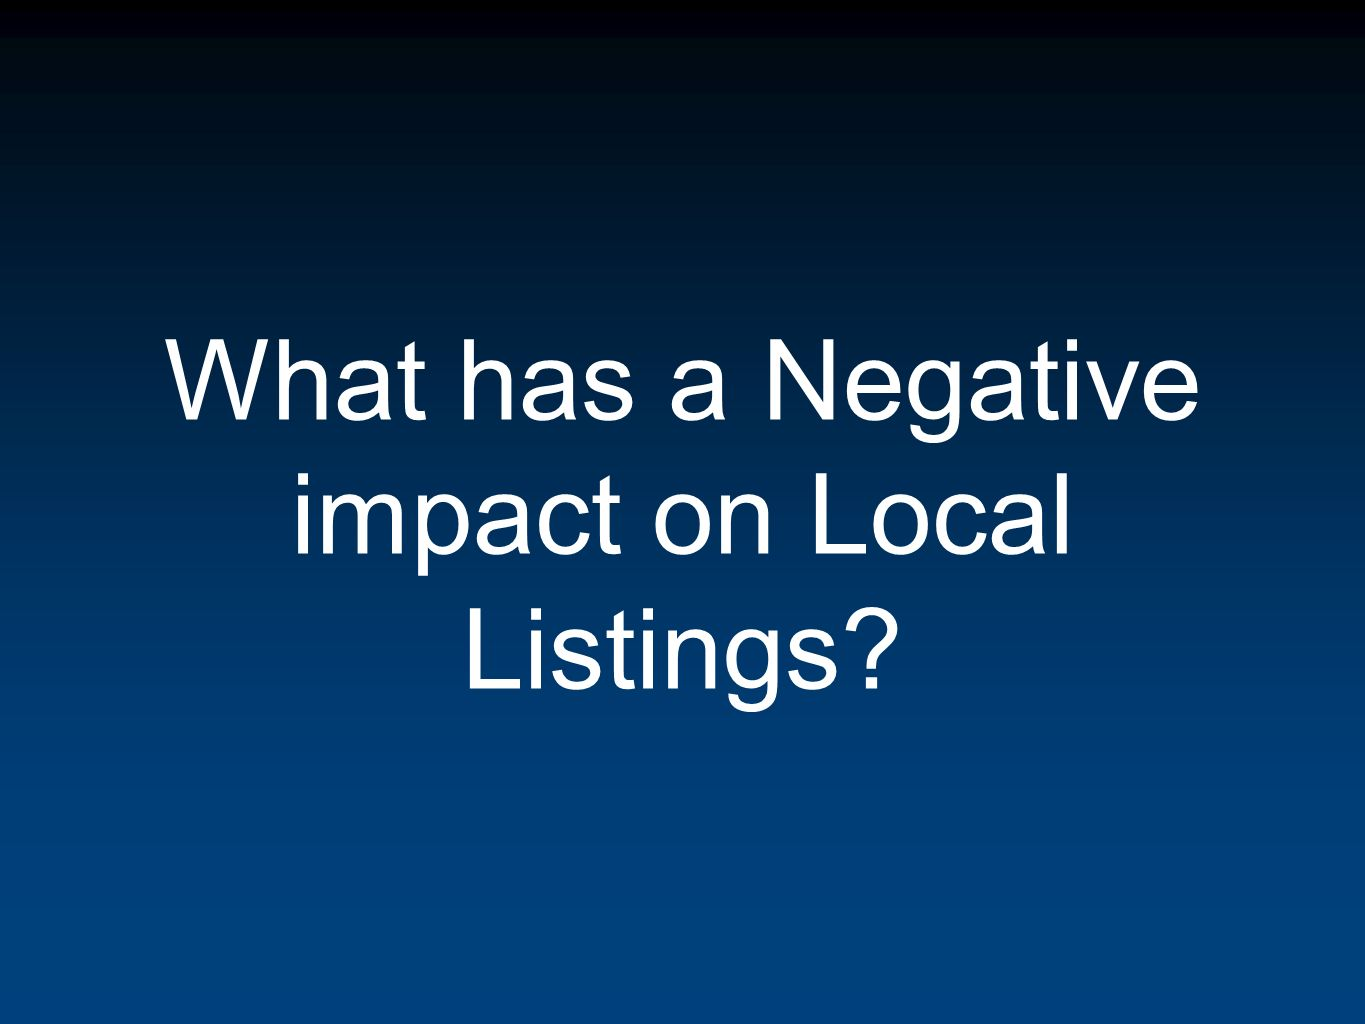 What has a Negative impact on Local Listings